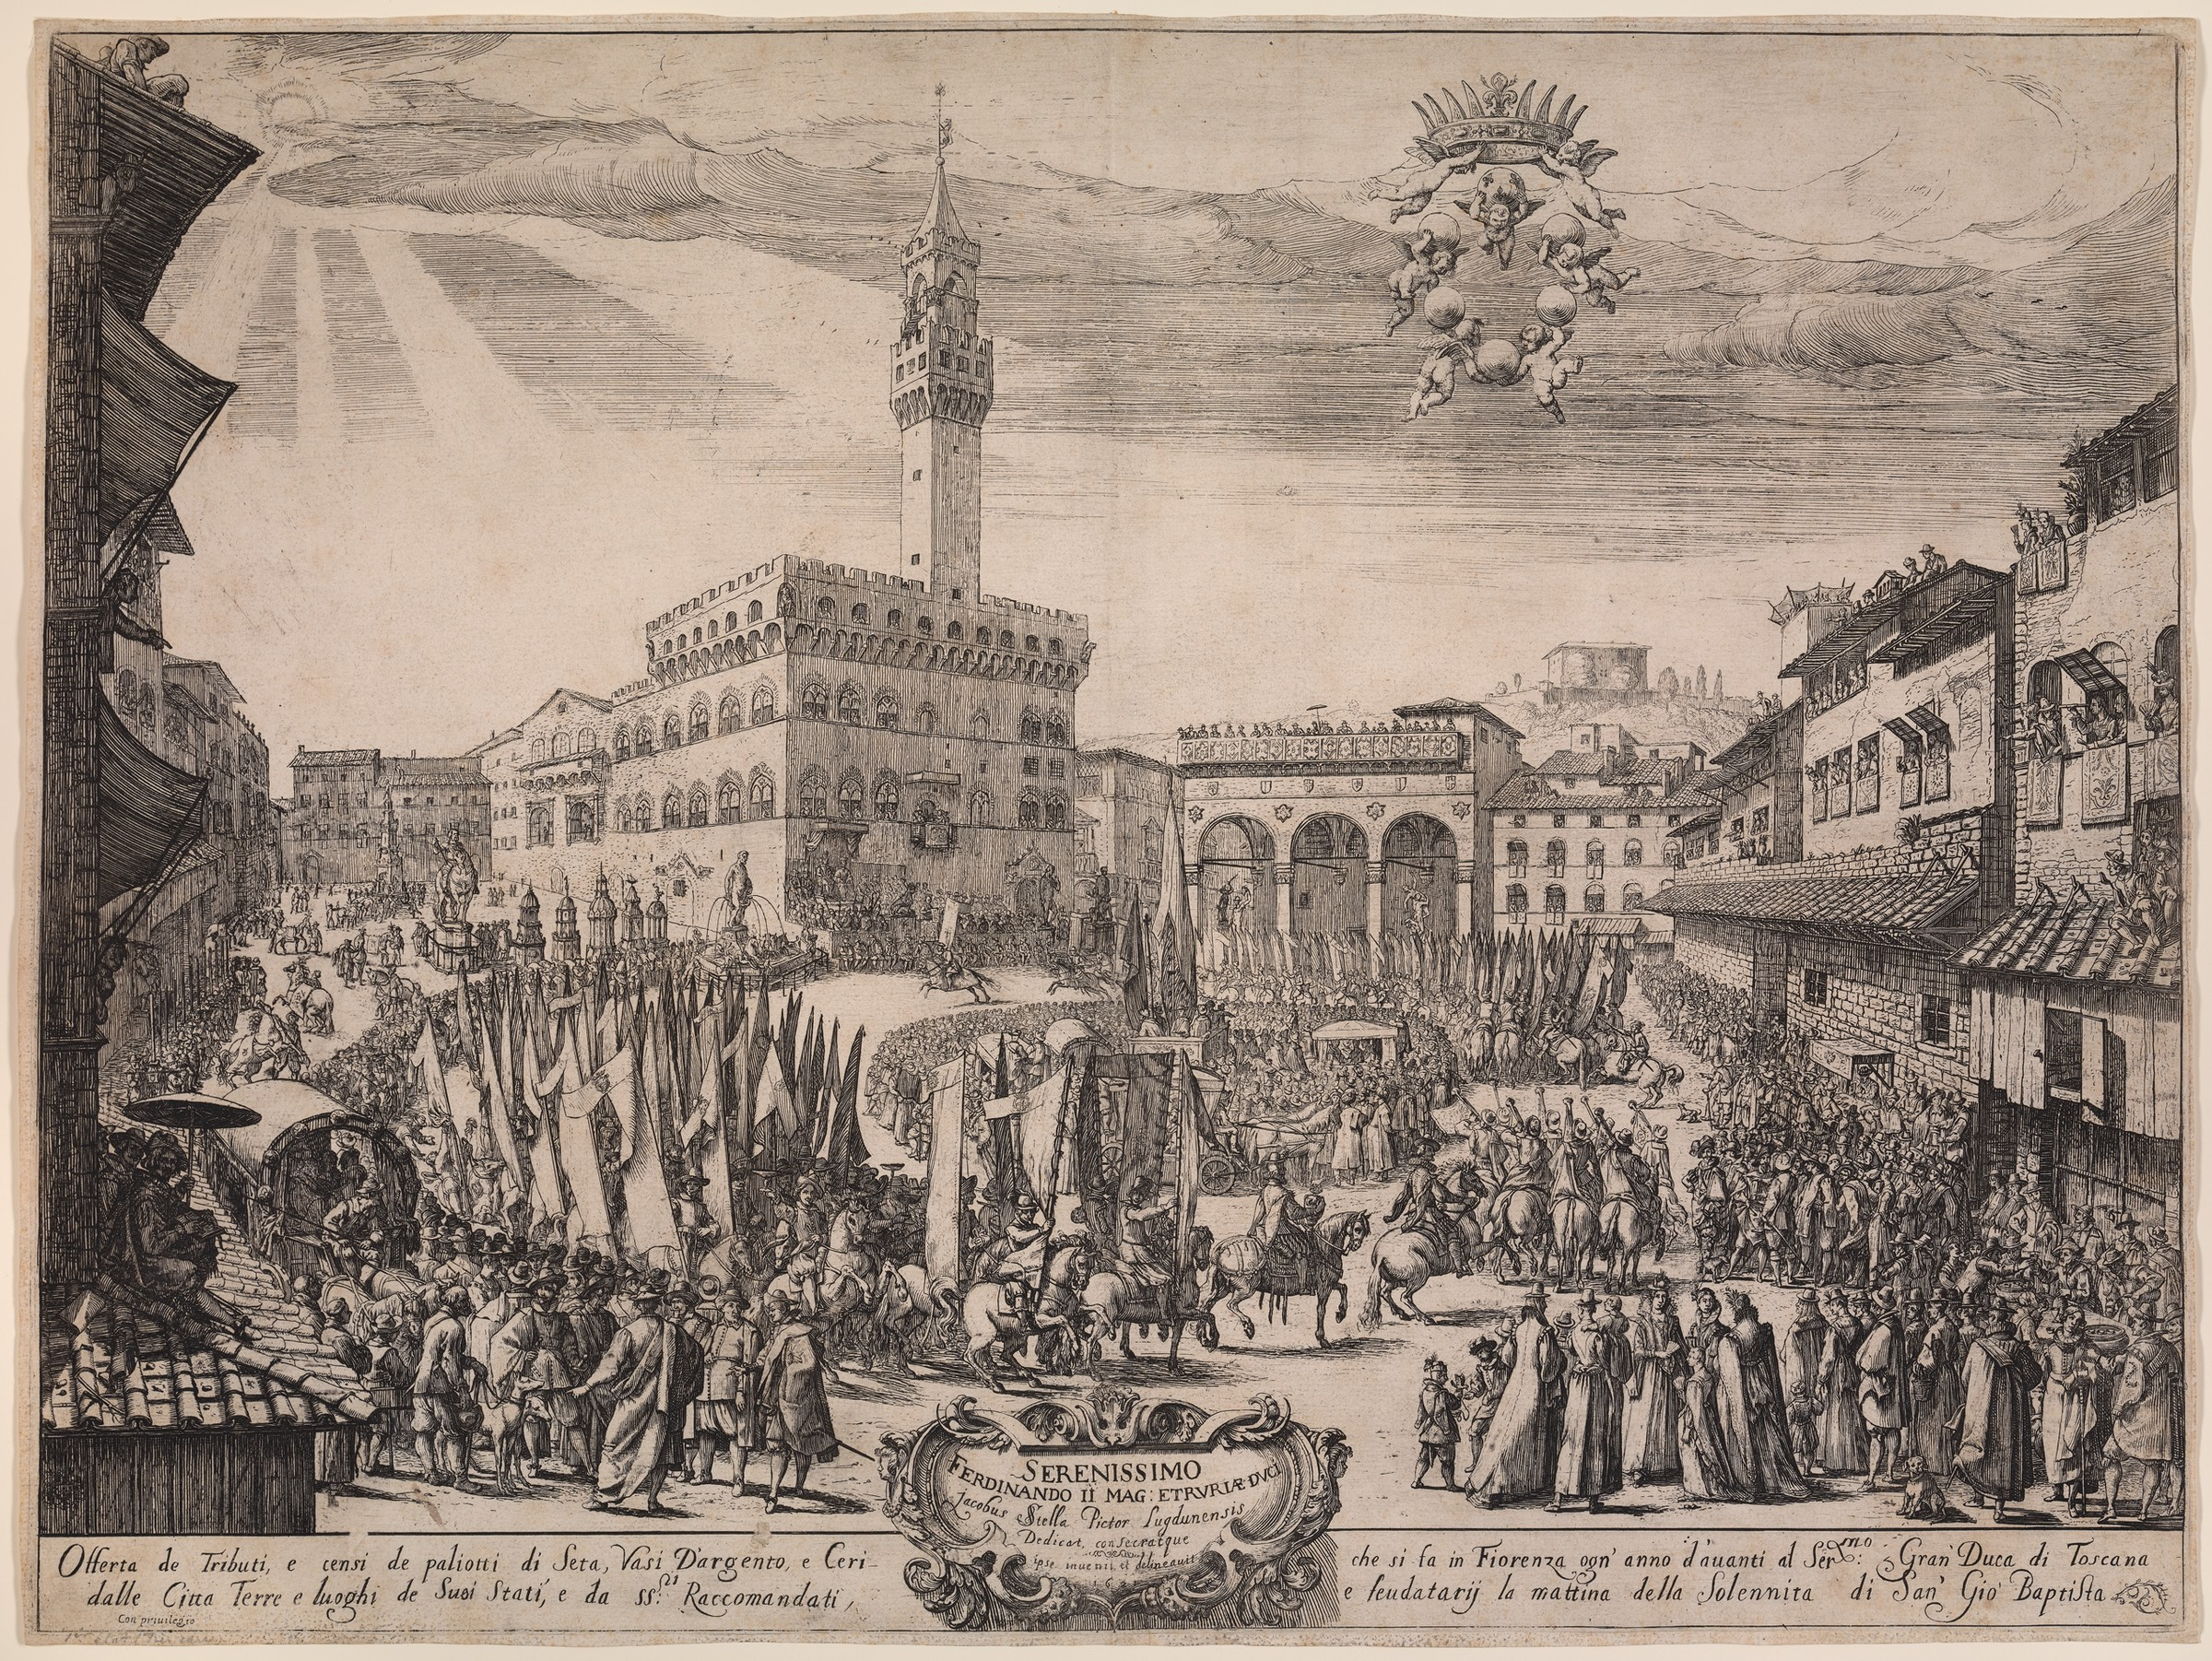 This print shows a city square surrounded by houses and public buildings. A large group of people approaches from the left, with mounted riders taking the lead and numerous flag-bearers following, ahead of groups of people behind them. Viewers are lining the square as the parade goes by. An inscription in Italian is at the bottom of the print; a coat of arms floats in the sky.